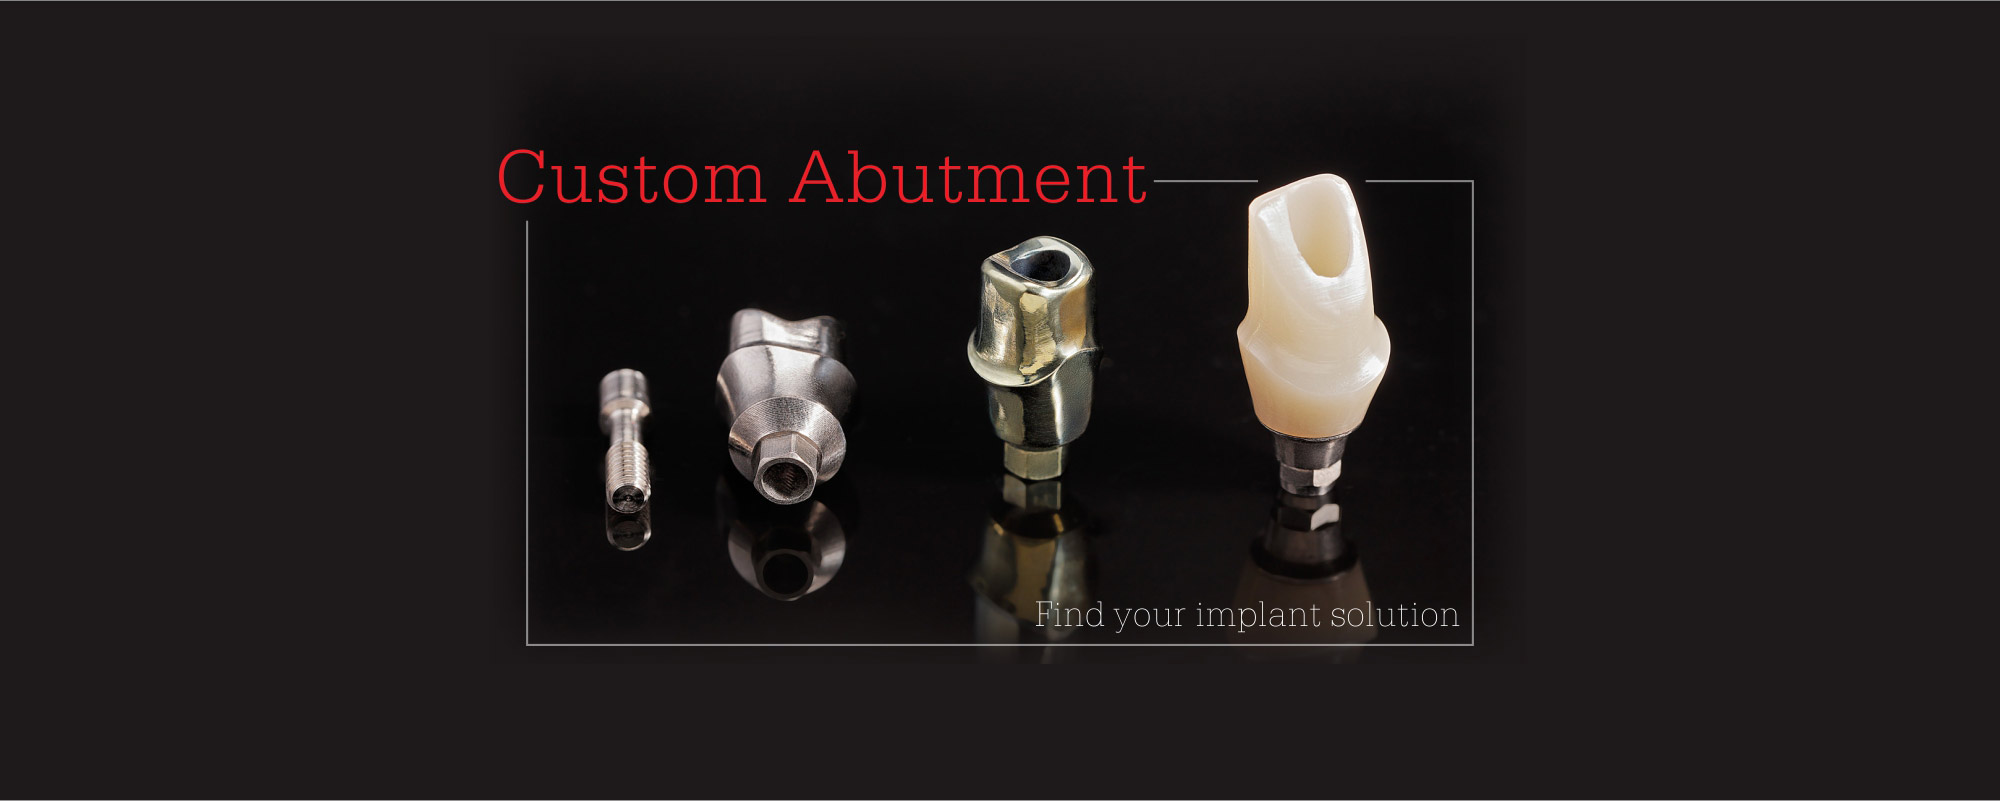 Custom Abutment,Find your implant solution